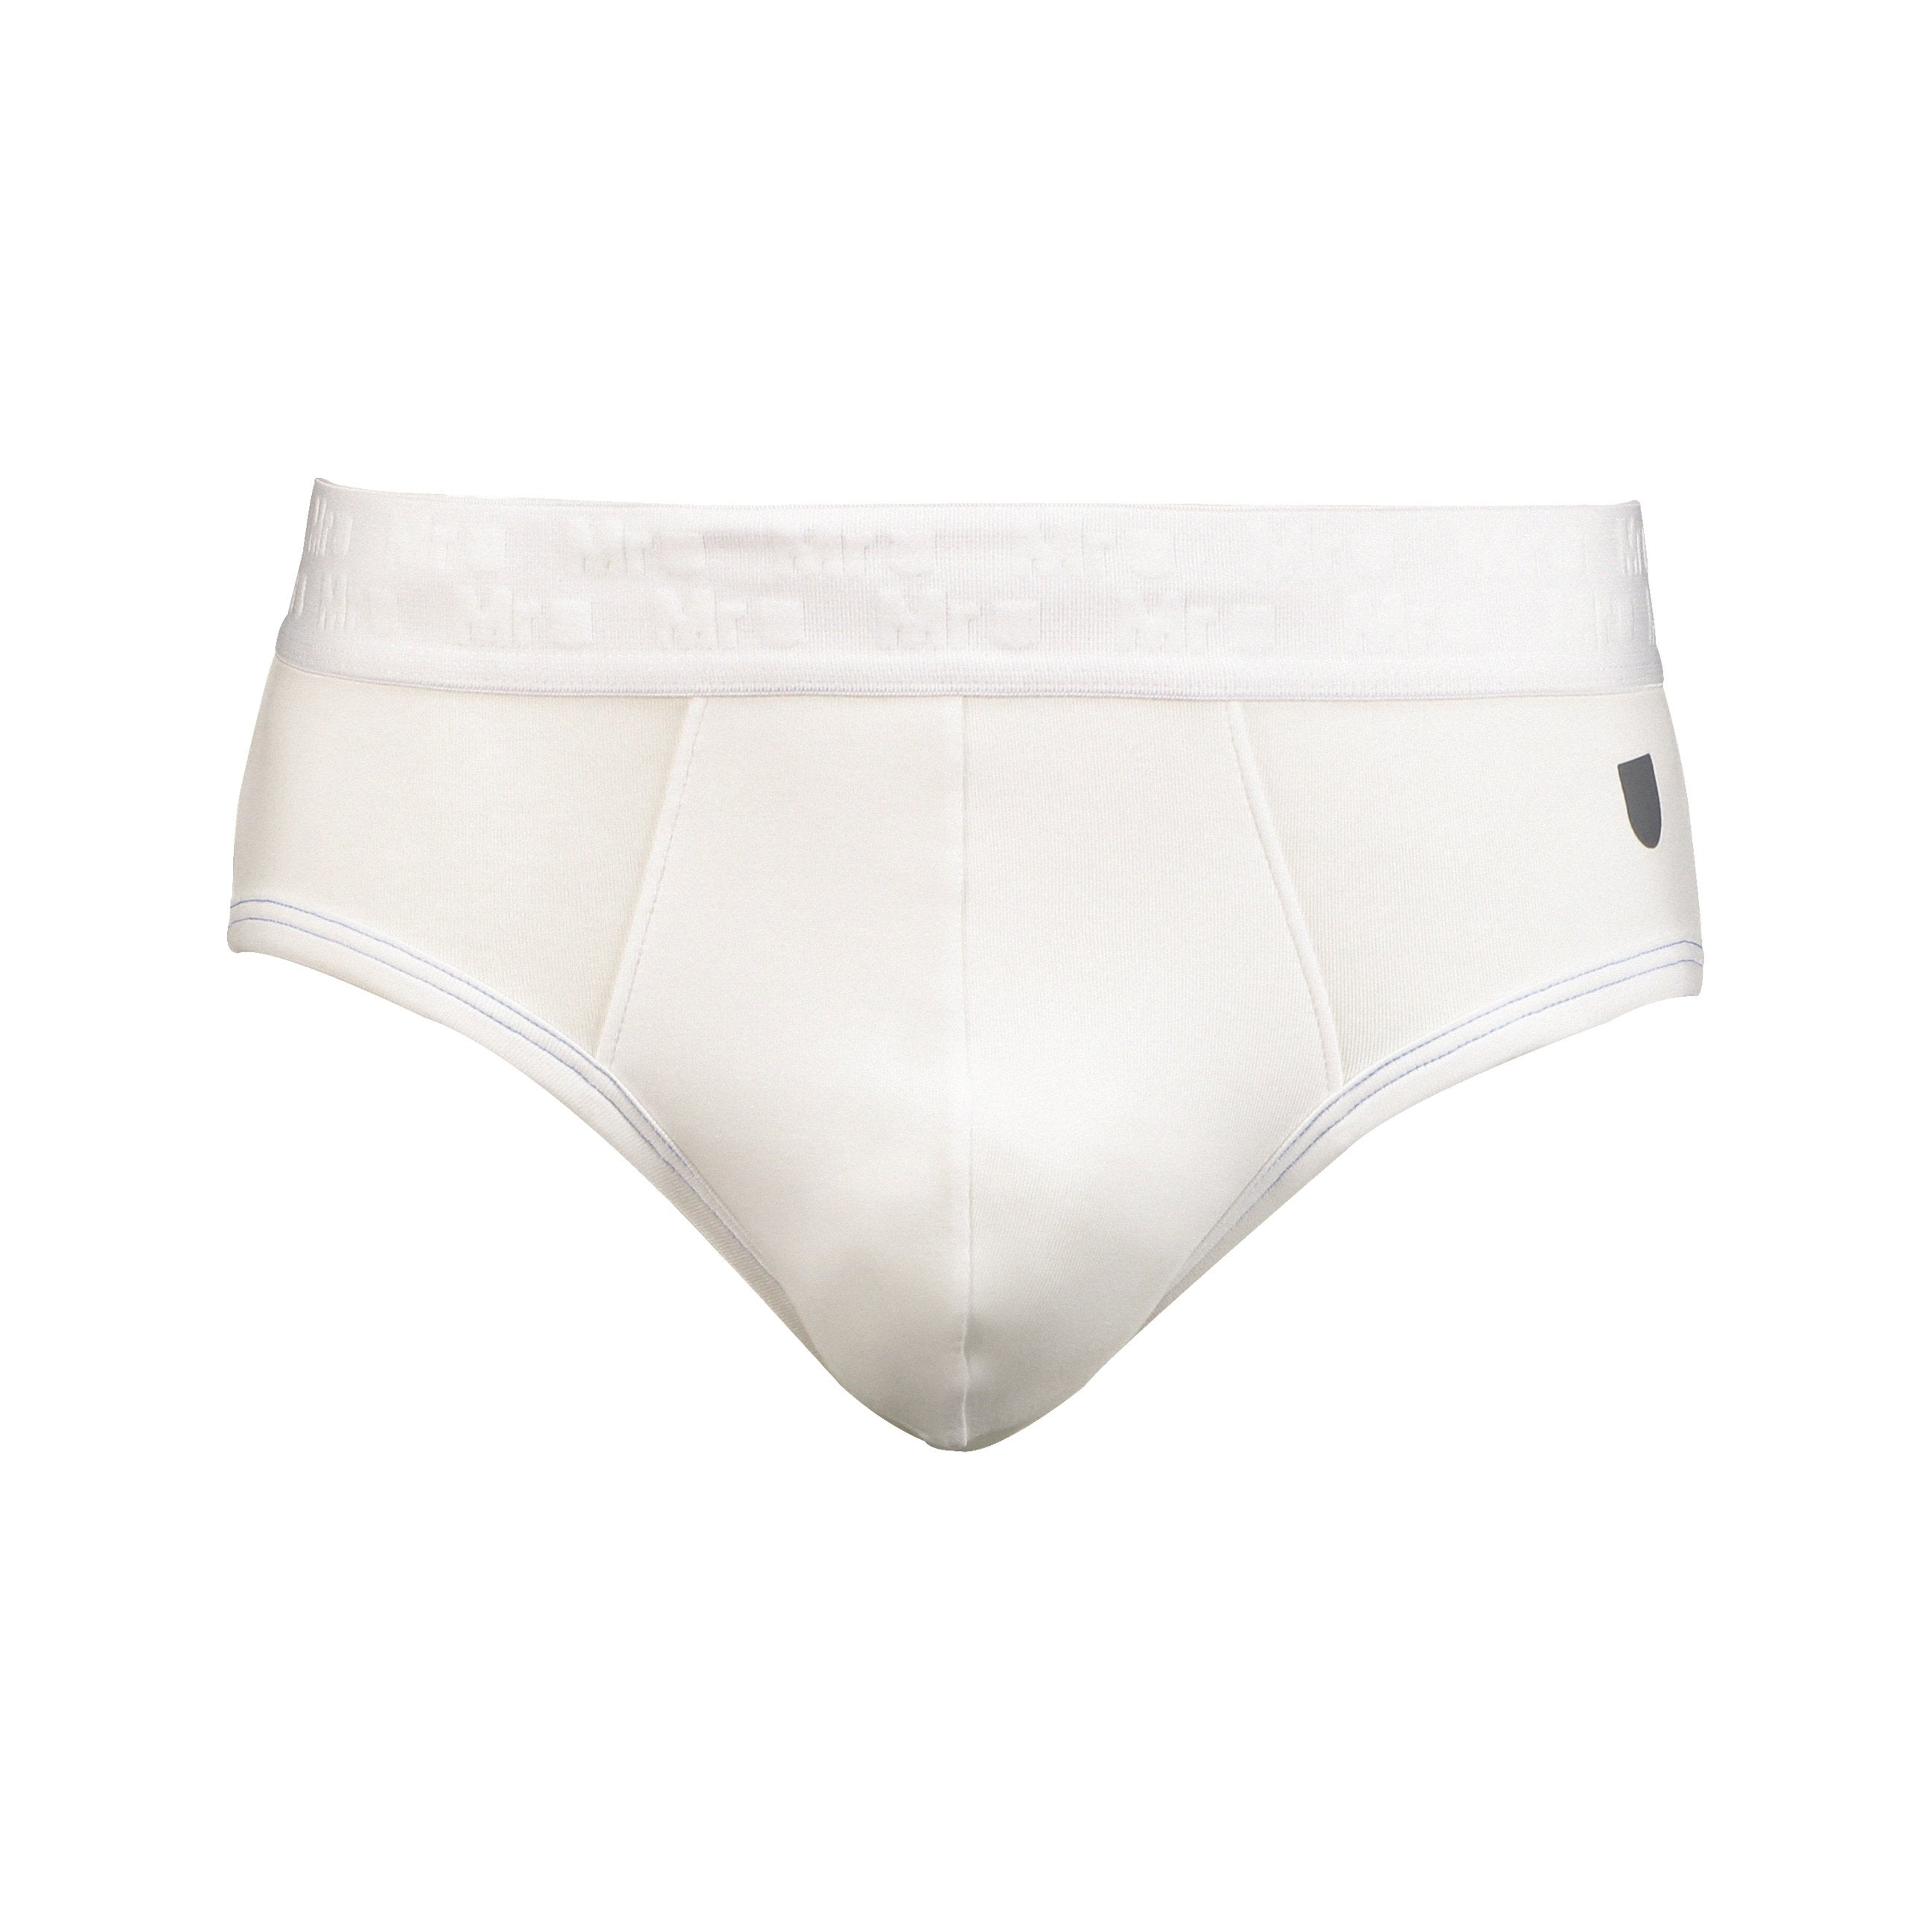 MR.U CLASSIC BRIEF 100% BLANCO - MRU.MX